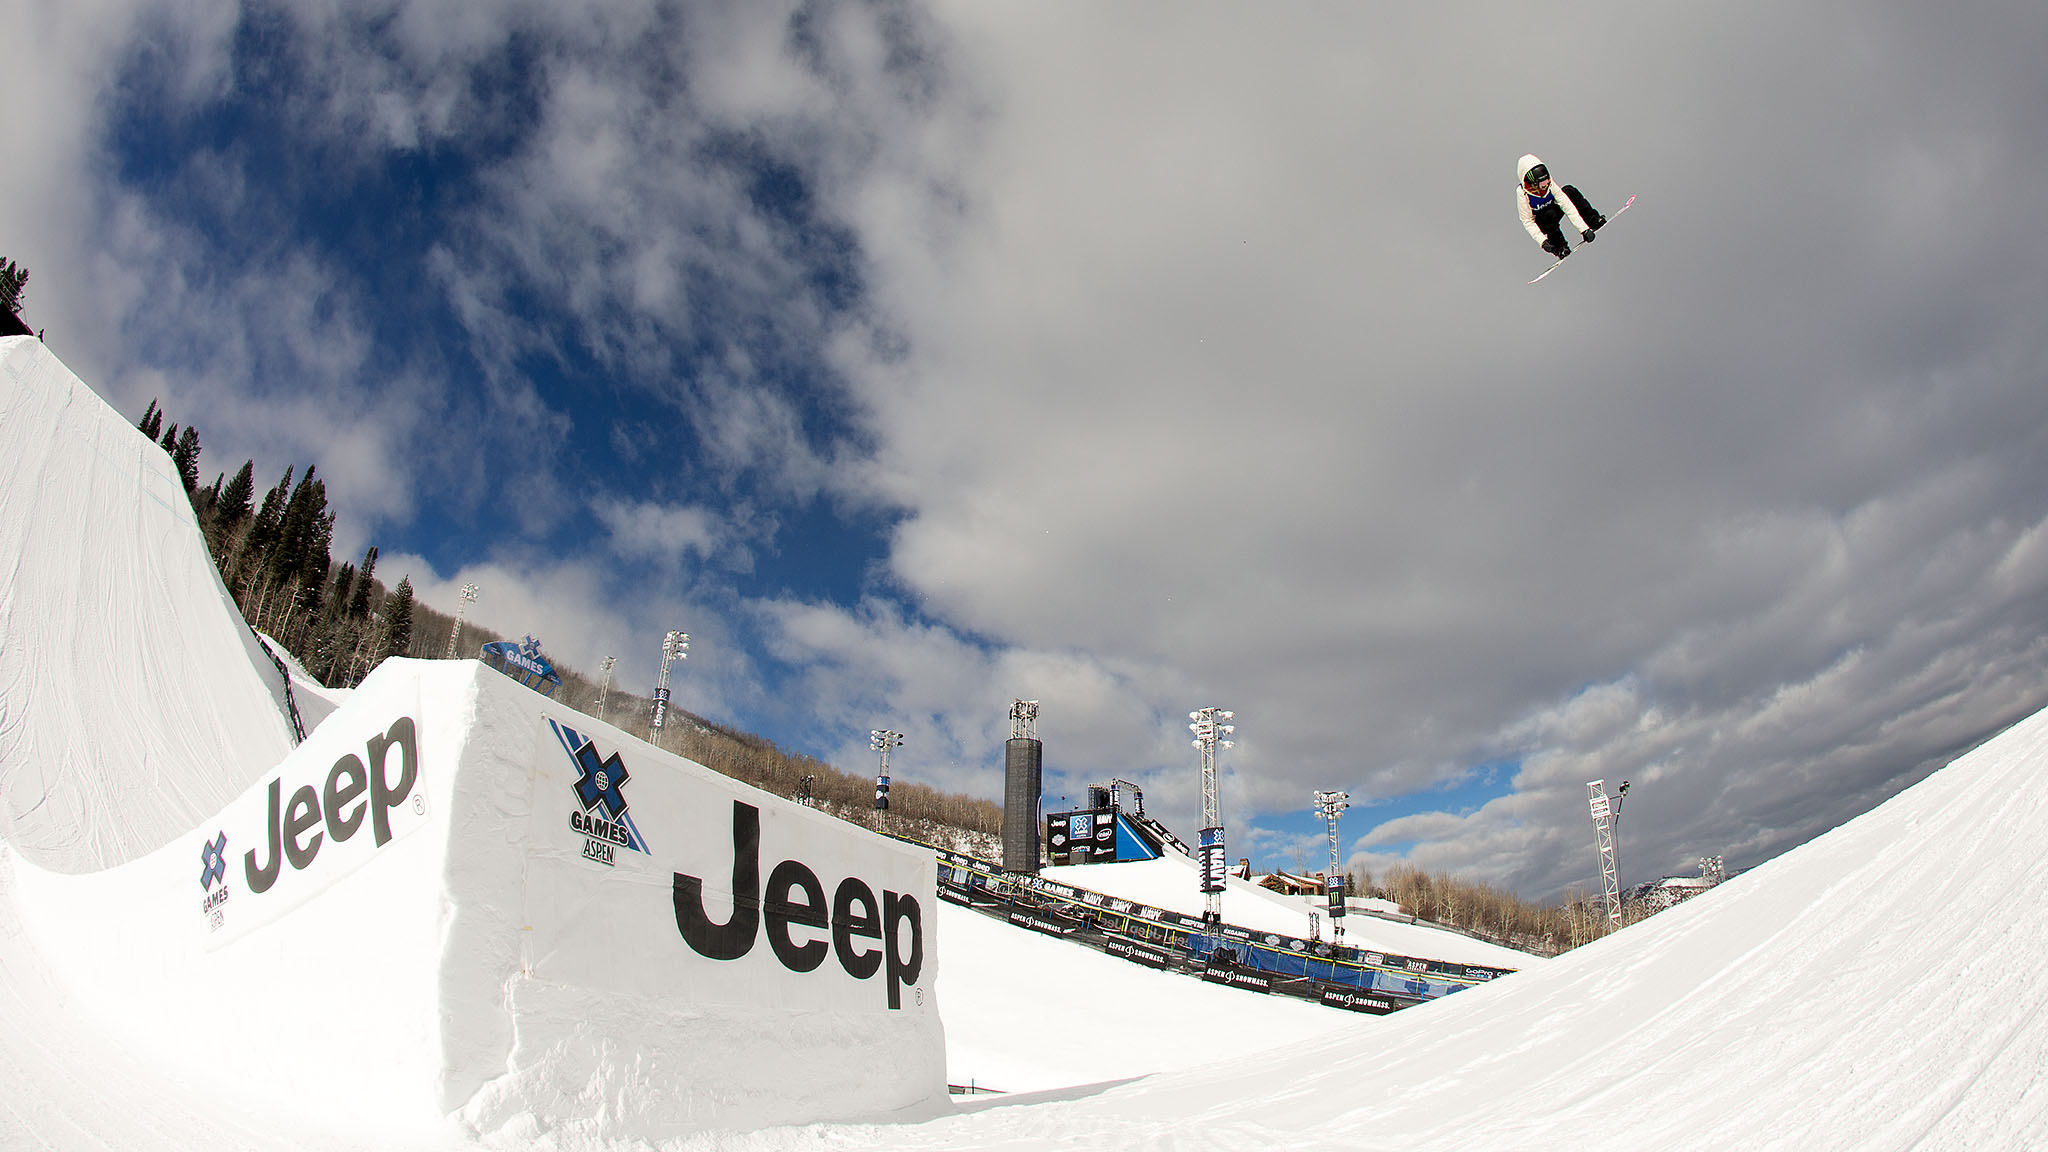 Women's Snowboard Big Air: Jamie Anderson